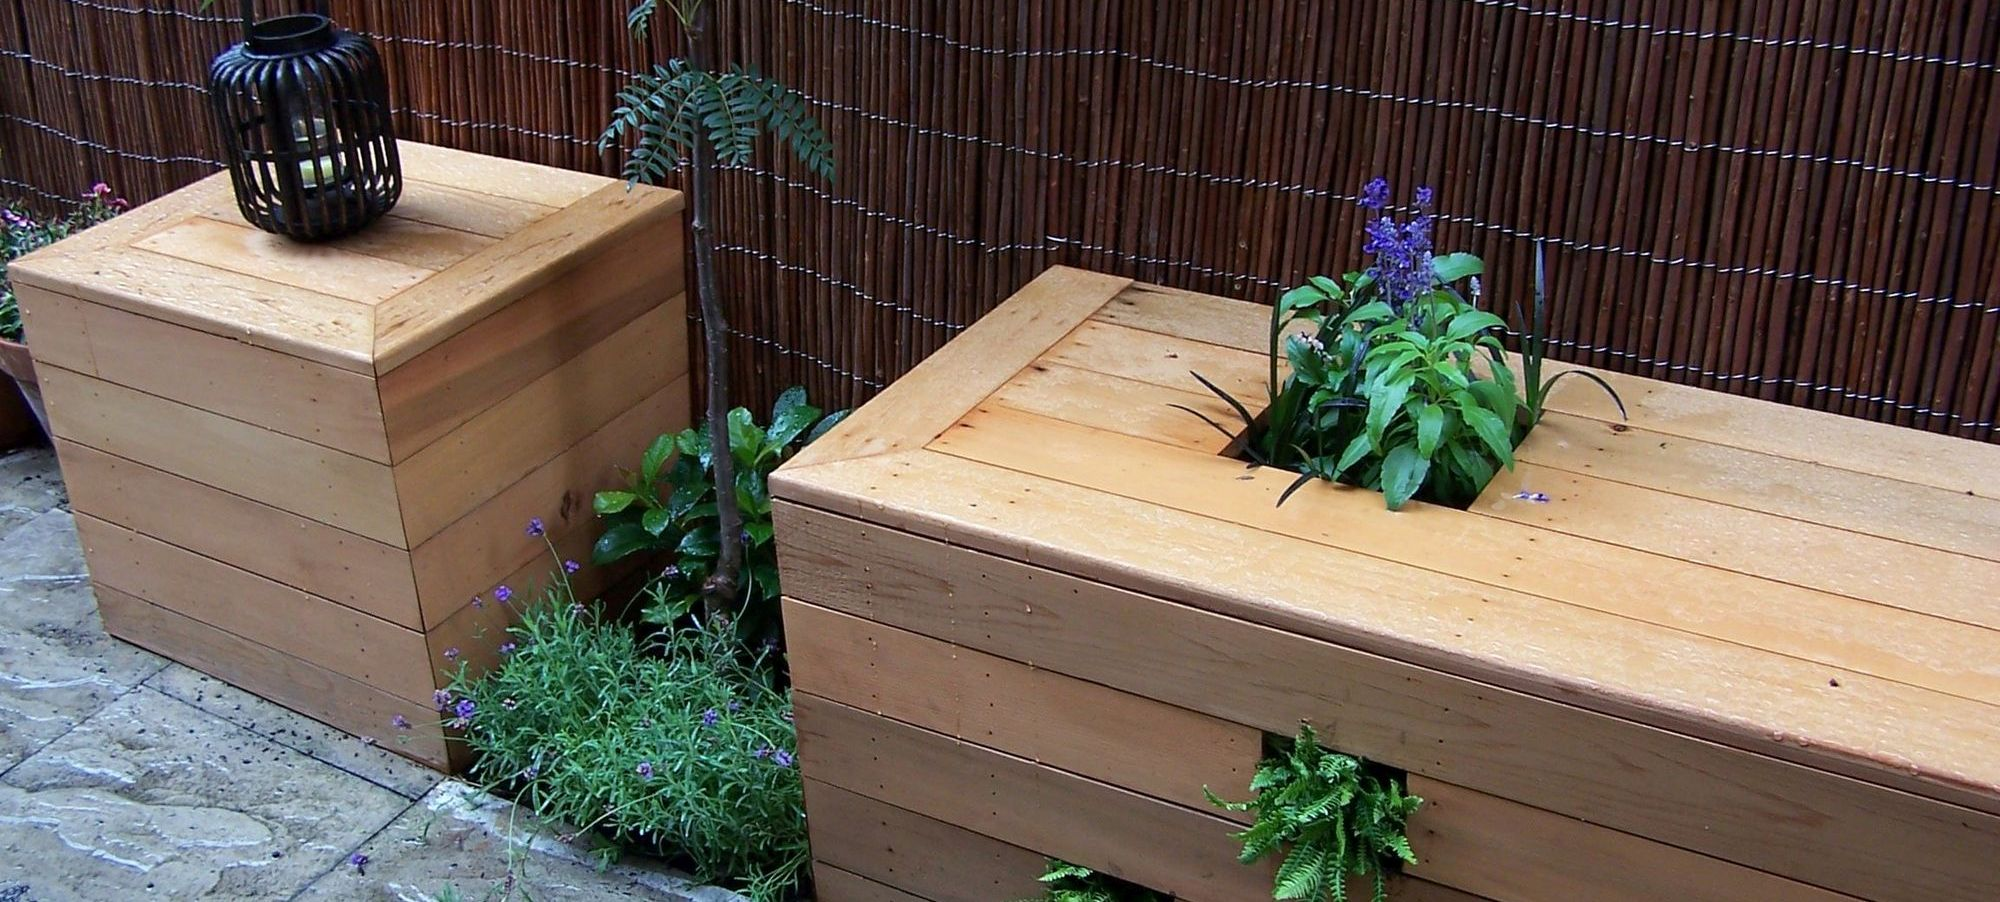 Bespoke seated planters